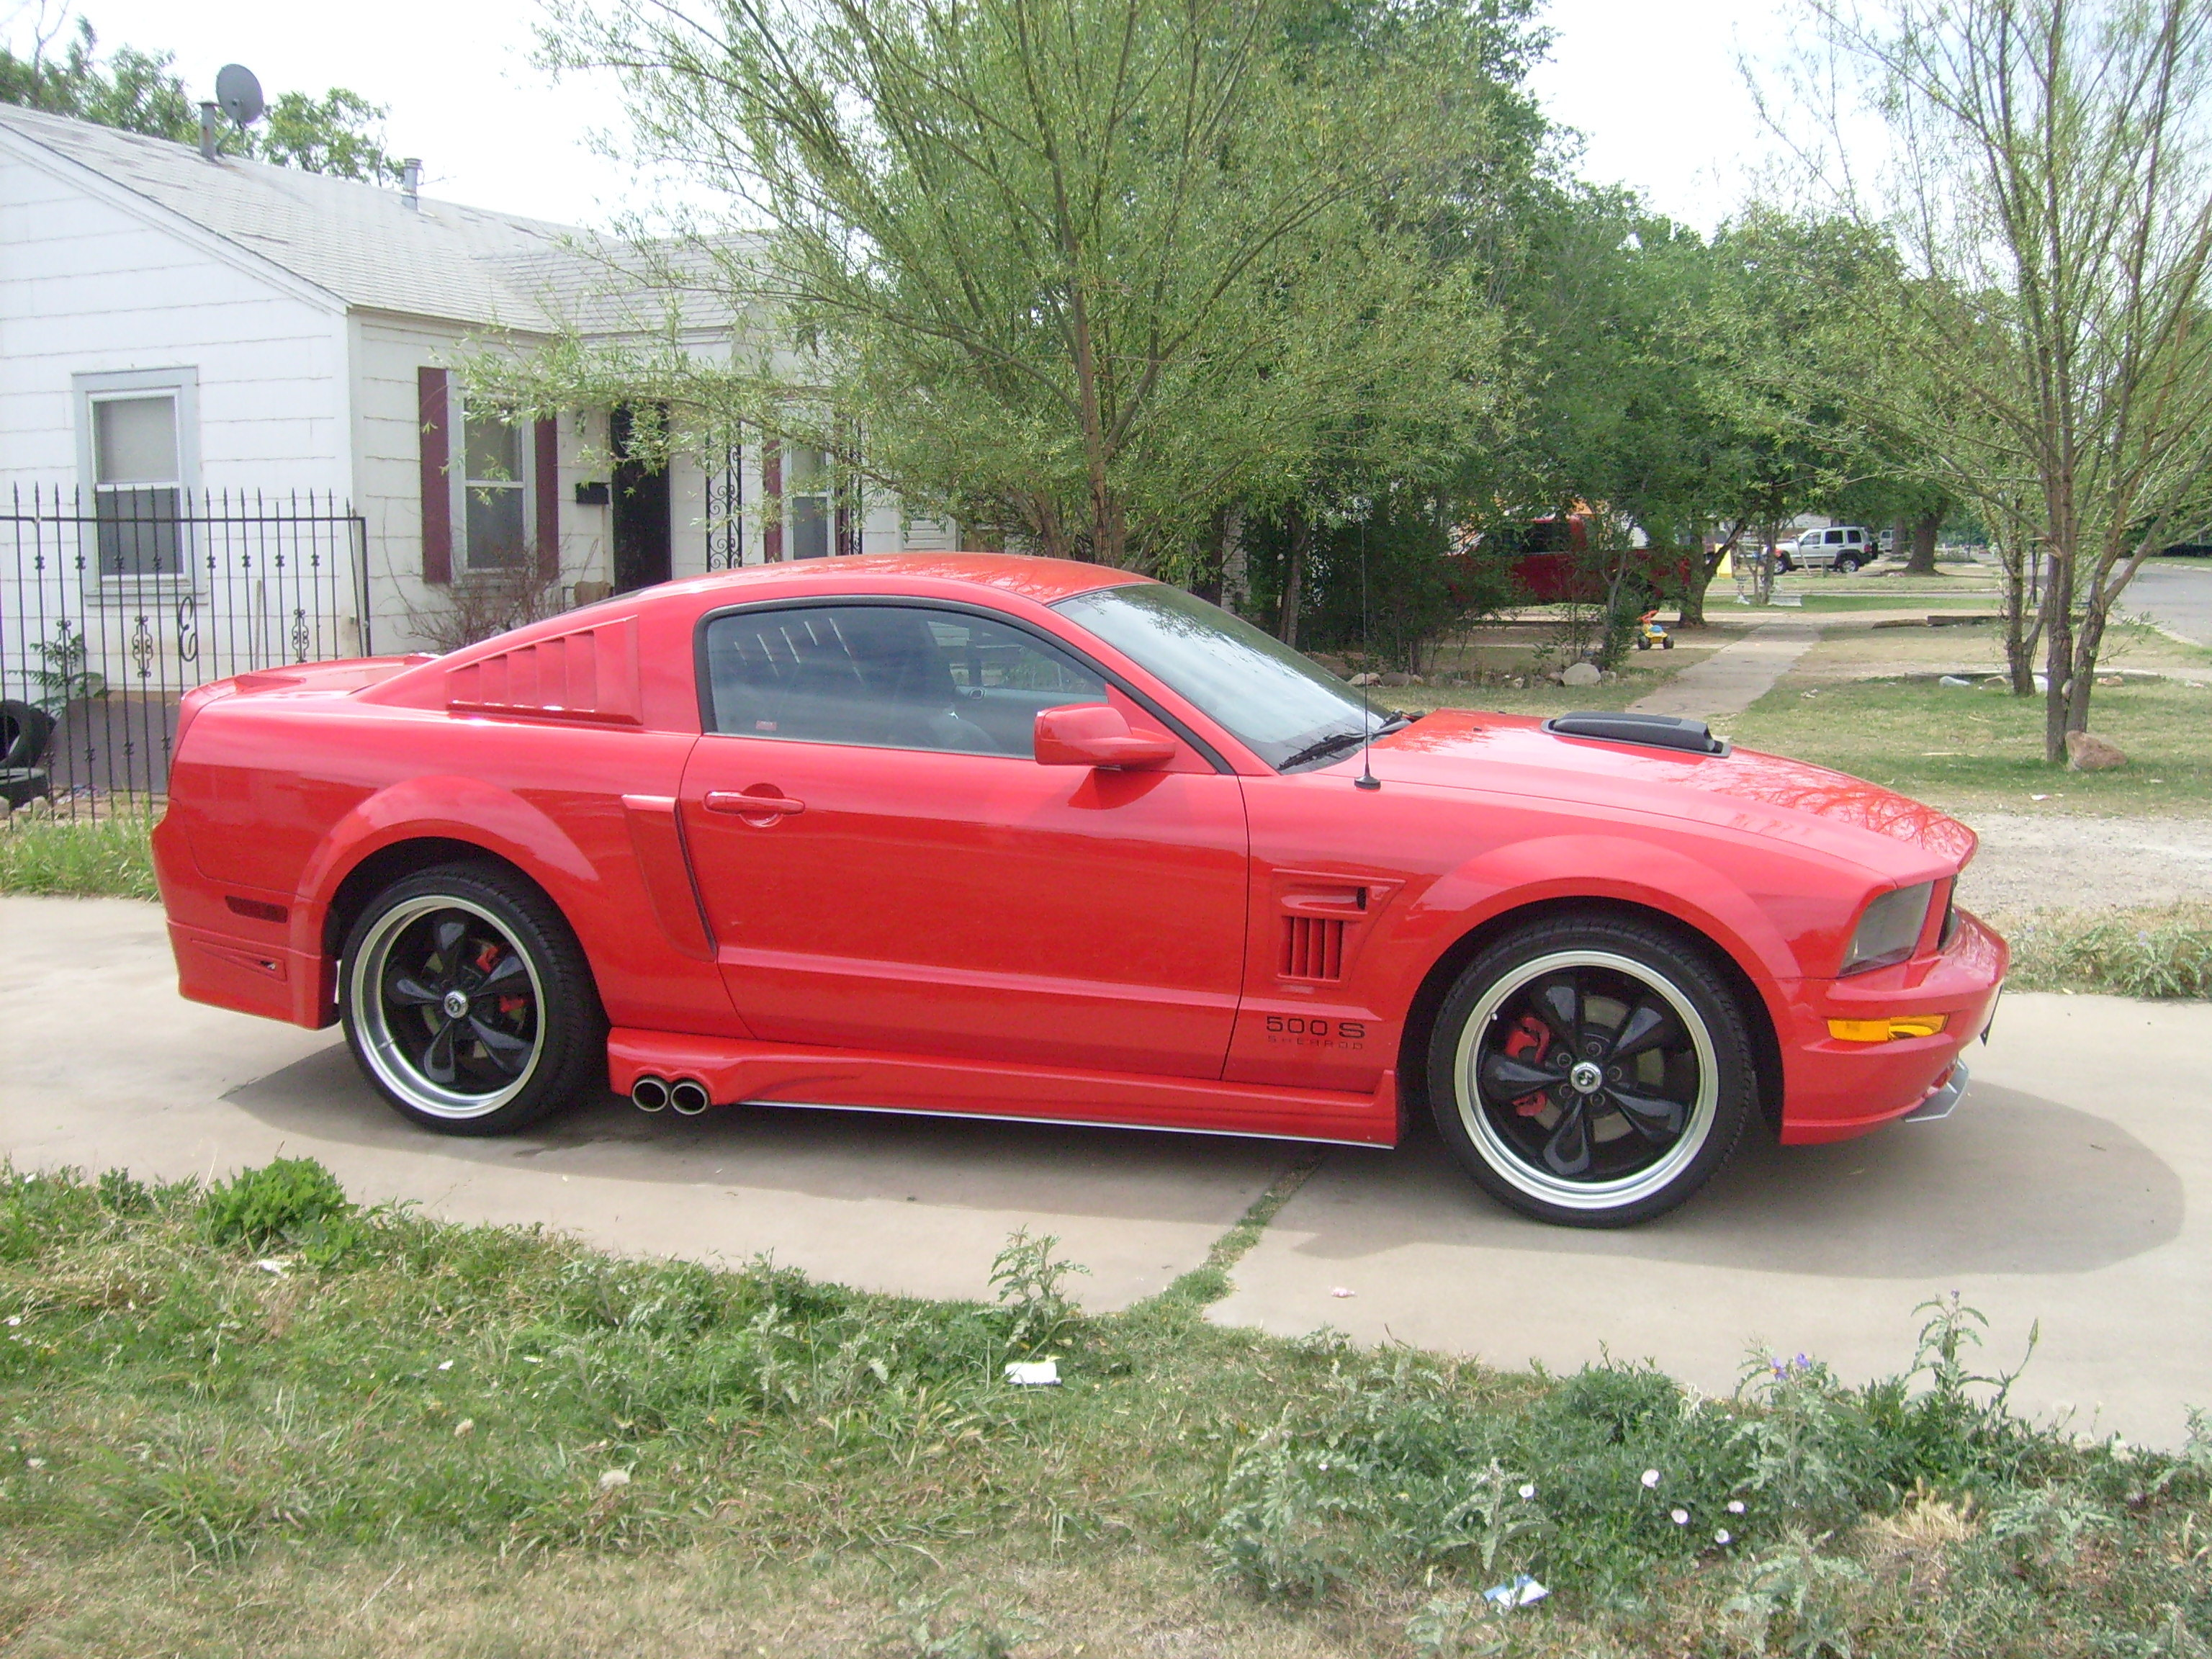 rodthestud 2008 Ford Mustang 12426579